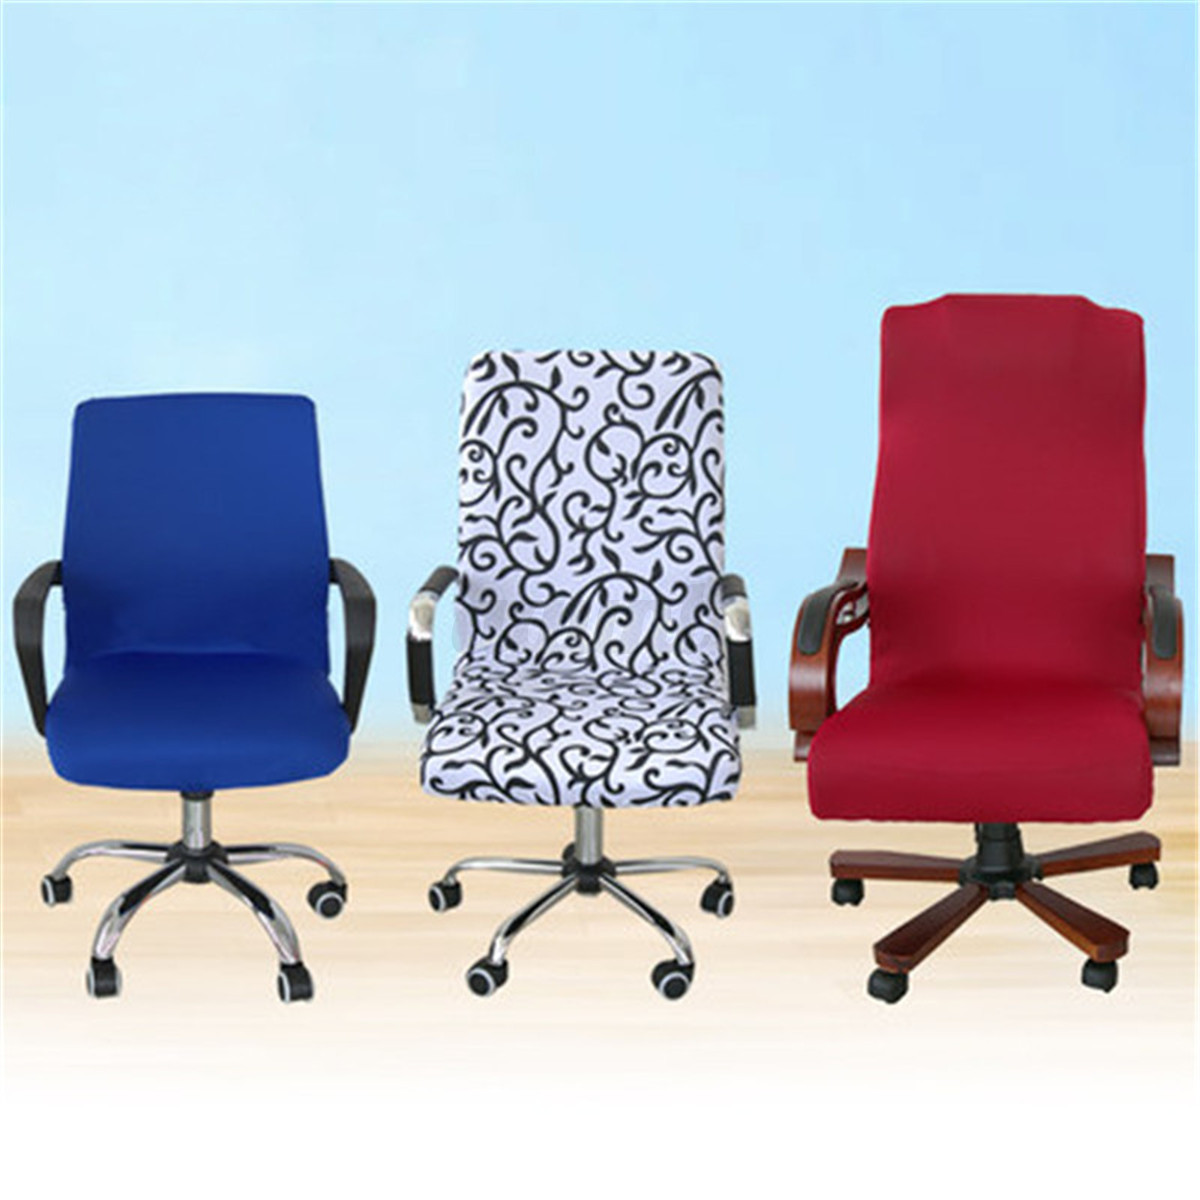 office chair covers india metal armchair swivel computer cover stretch